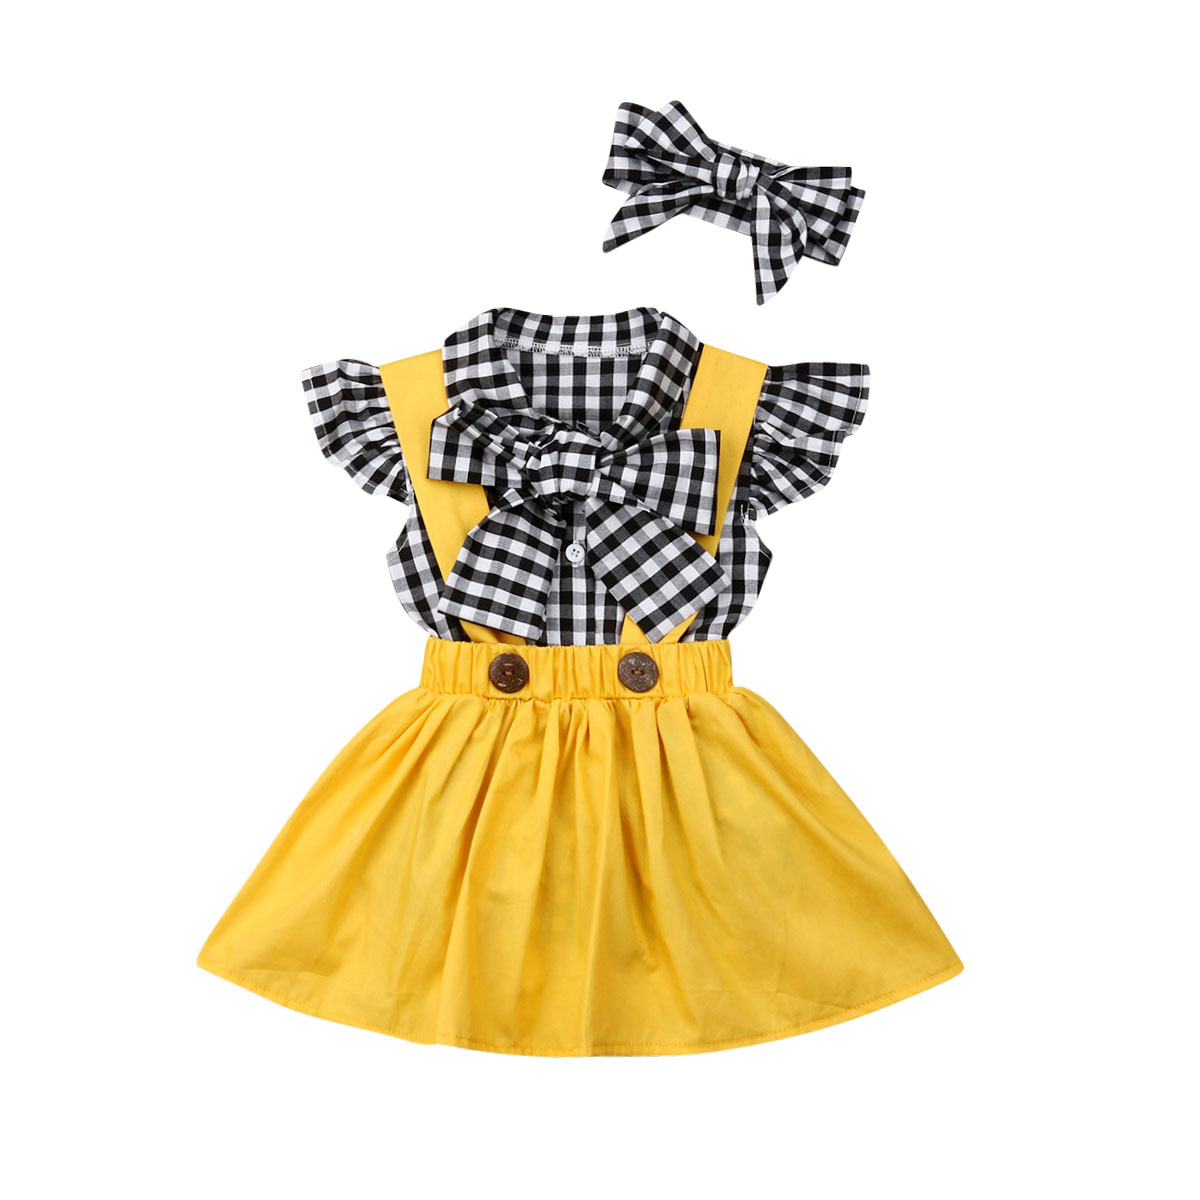 Toddler Kids Baby Girls Outfits Clothes T-shirt Tops+Strap Dress Skirt 3PCS Set